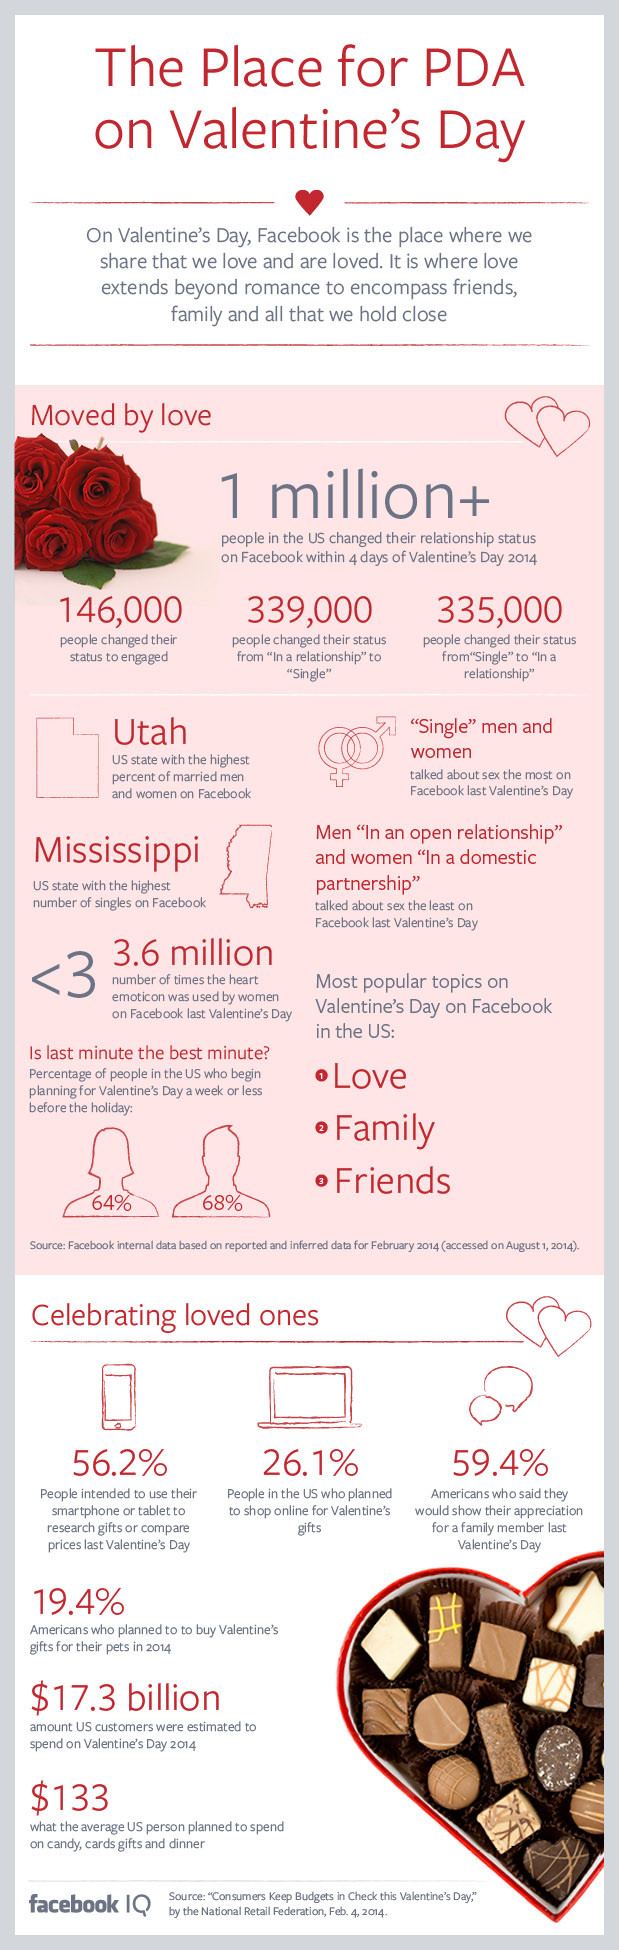 FBValentinesDayInfographic